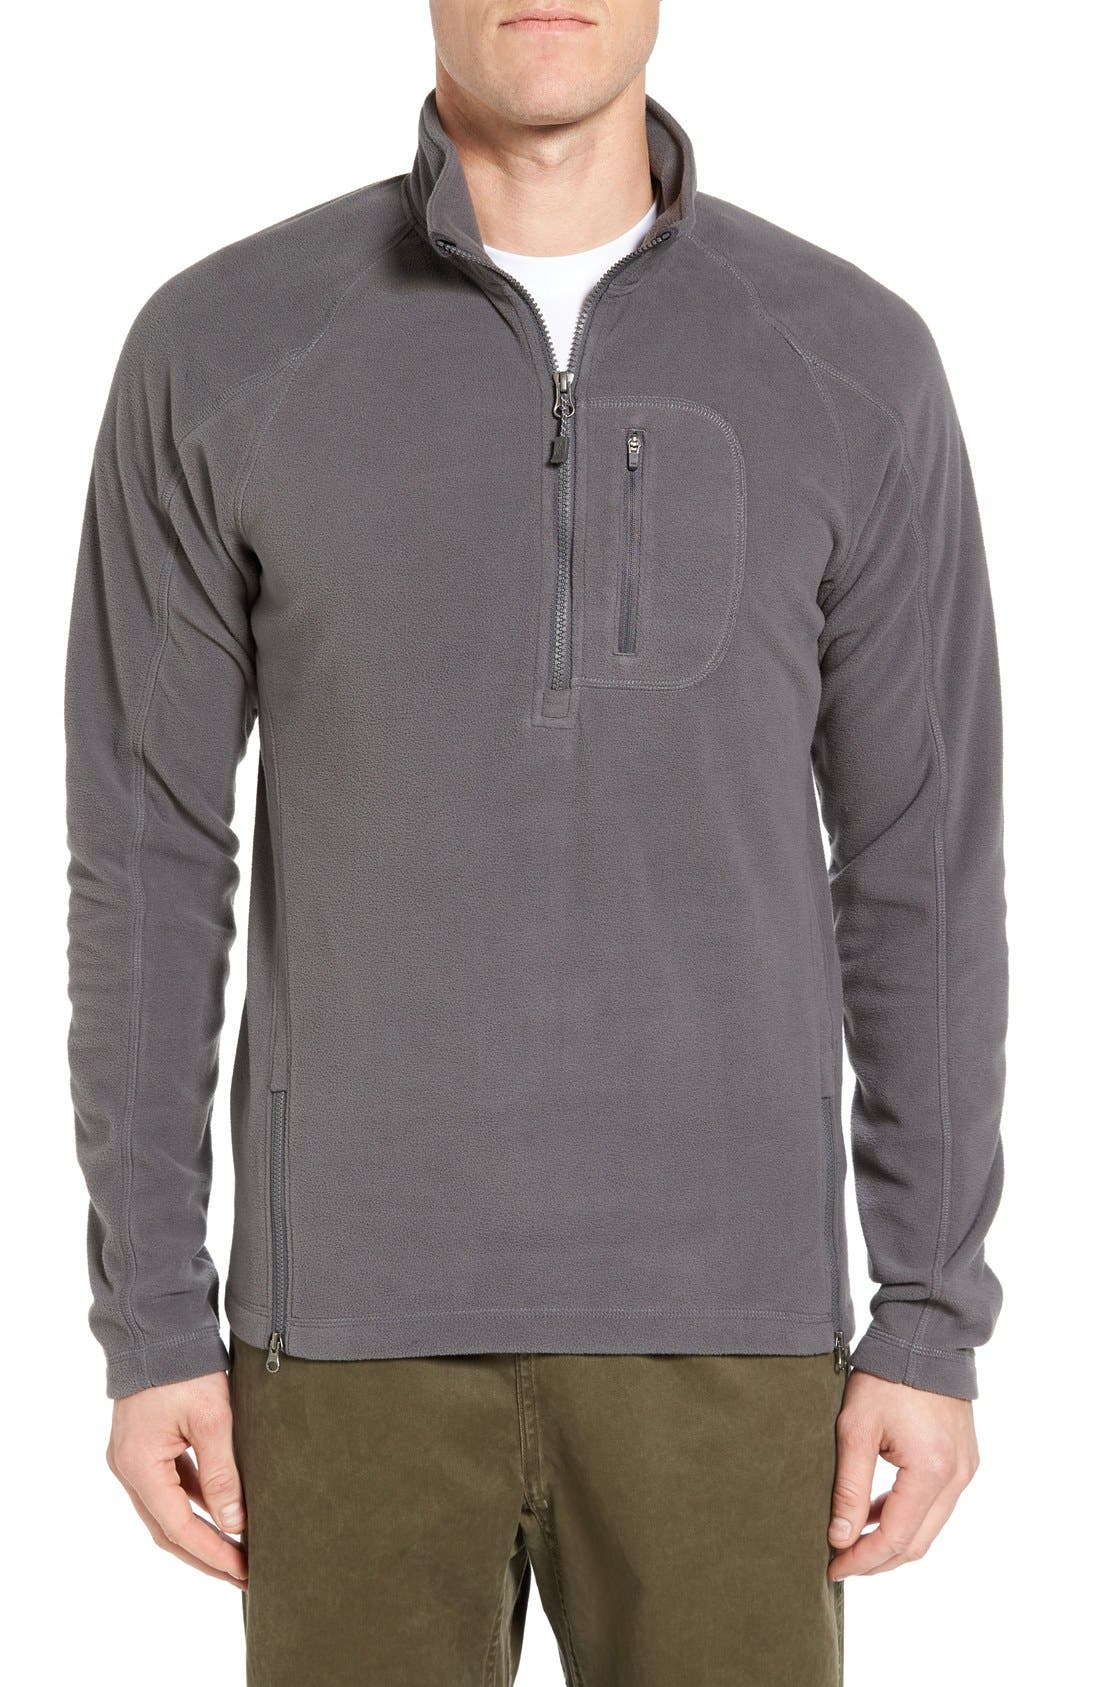 Alternate Image 1 Selected - Gramicci Utility Quarter Zip Fleece Sweater